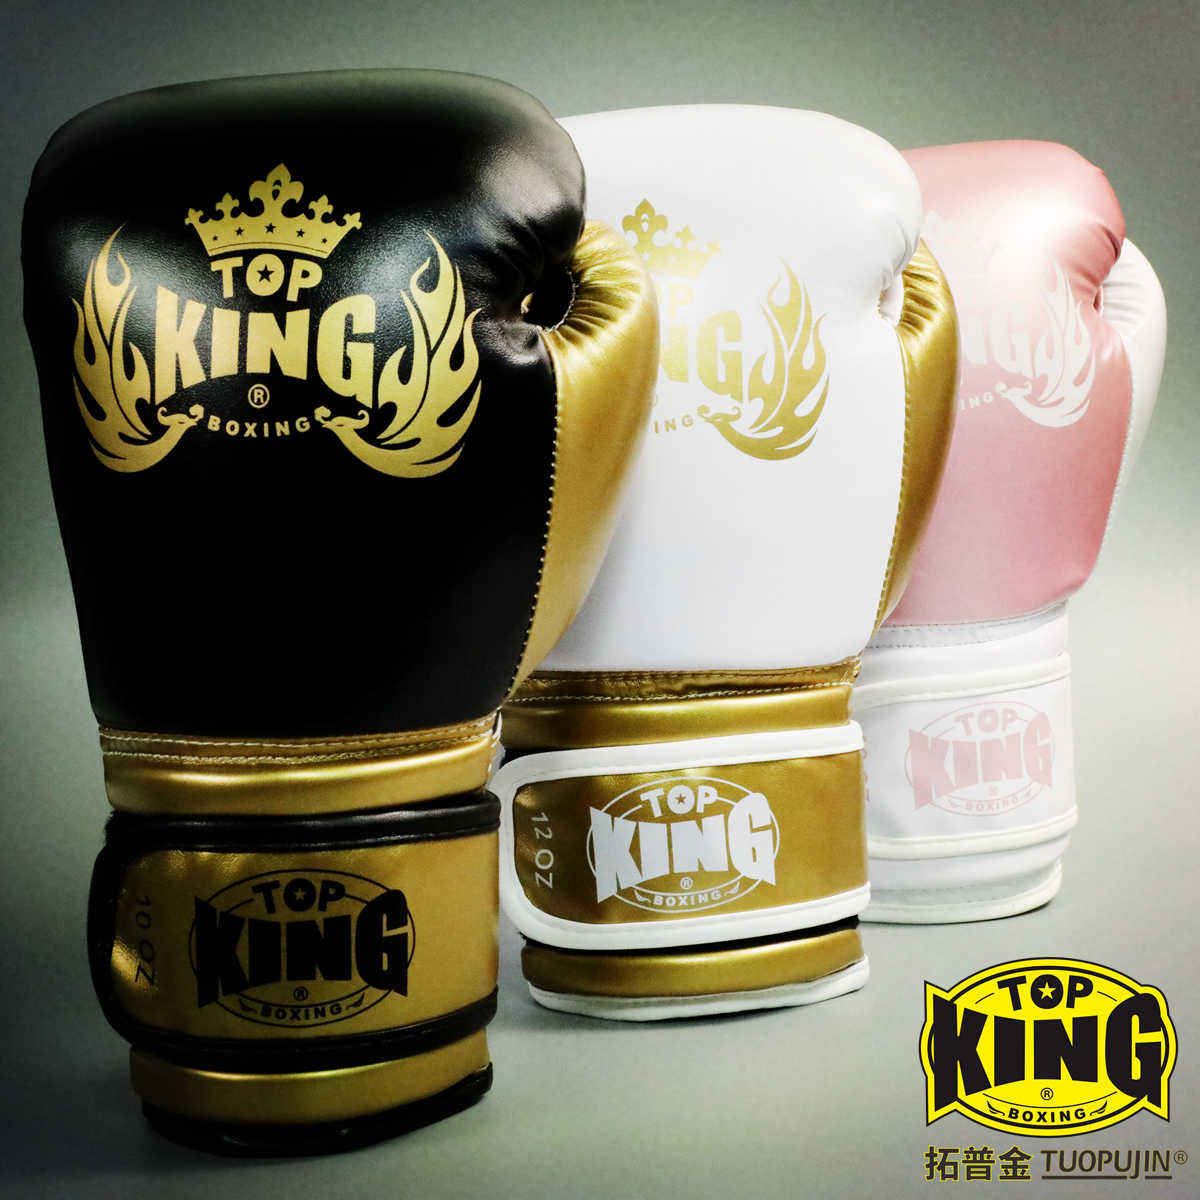 TOP KING BOXING TRAINING TOPKING BOKSHANDSCHOENEN TOPKING COMBAT MMA KICKBOXING FIGHT GEAR